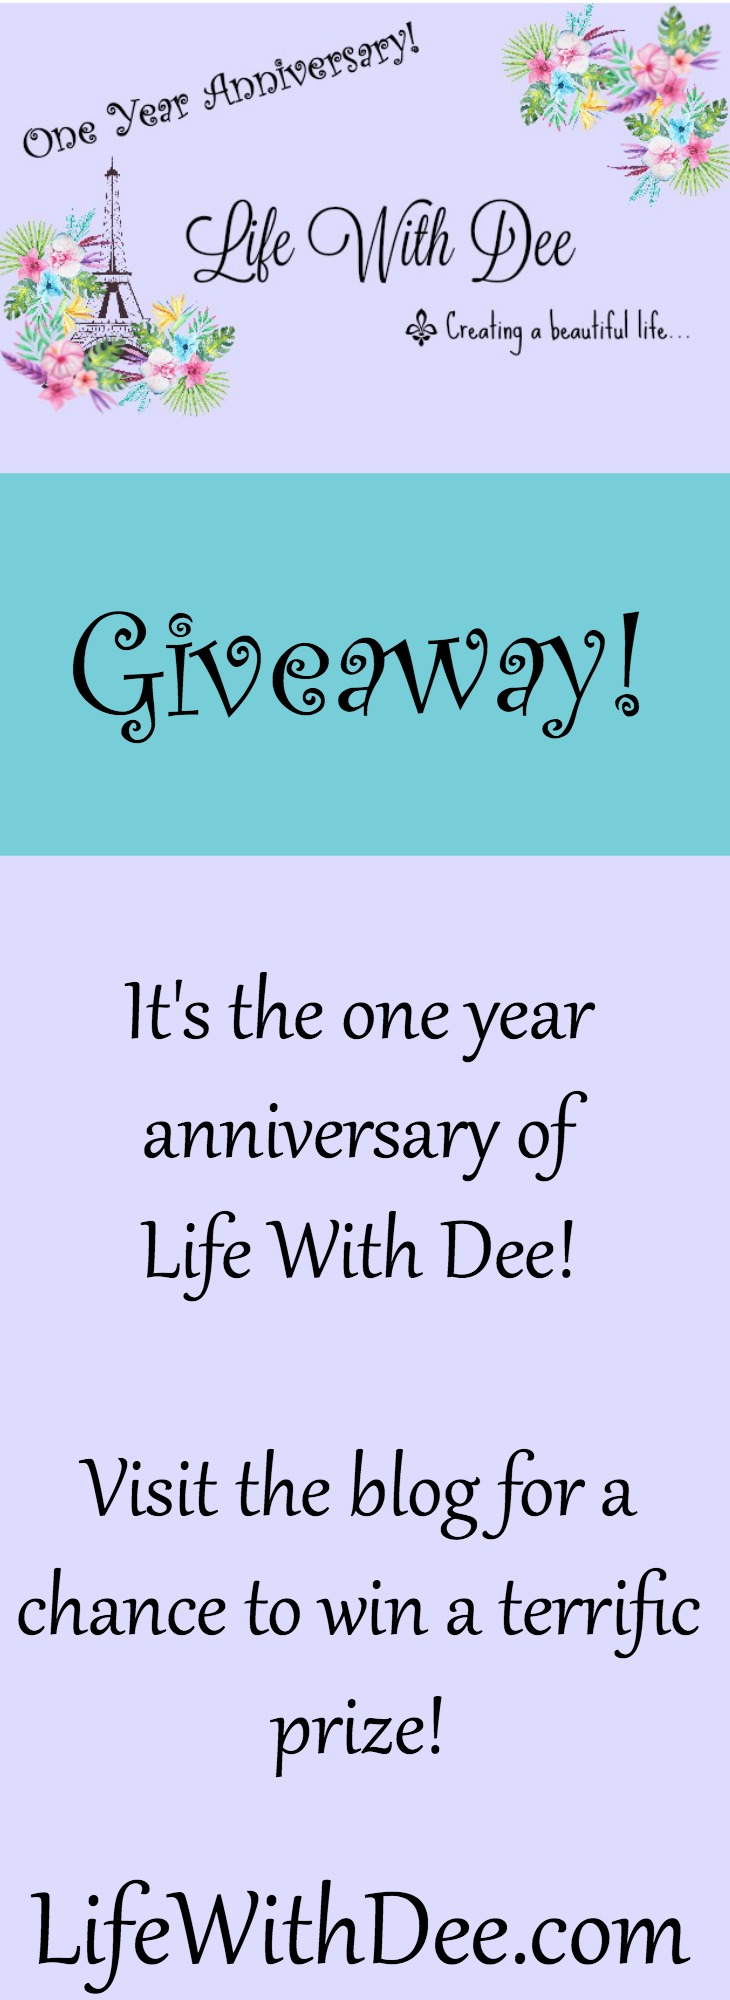 Life With Dee One Year Anniversary Giveaway!